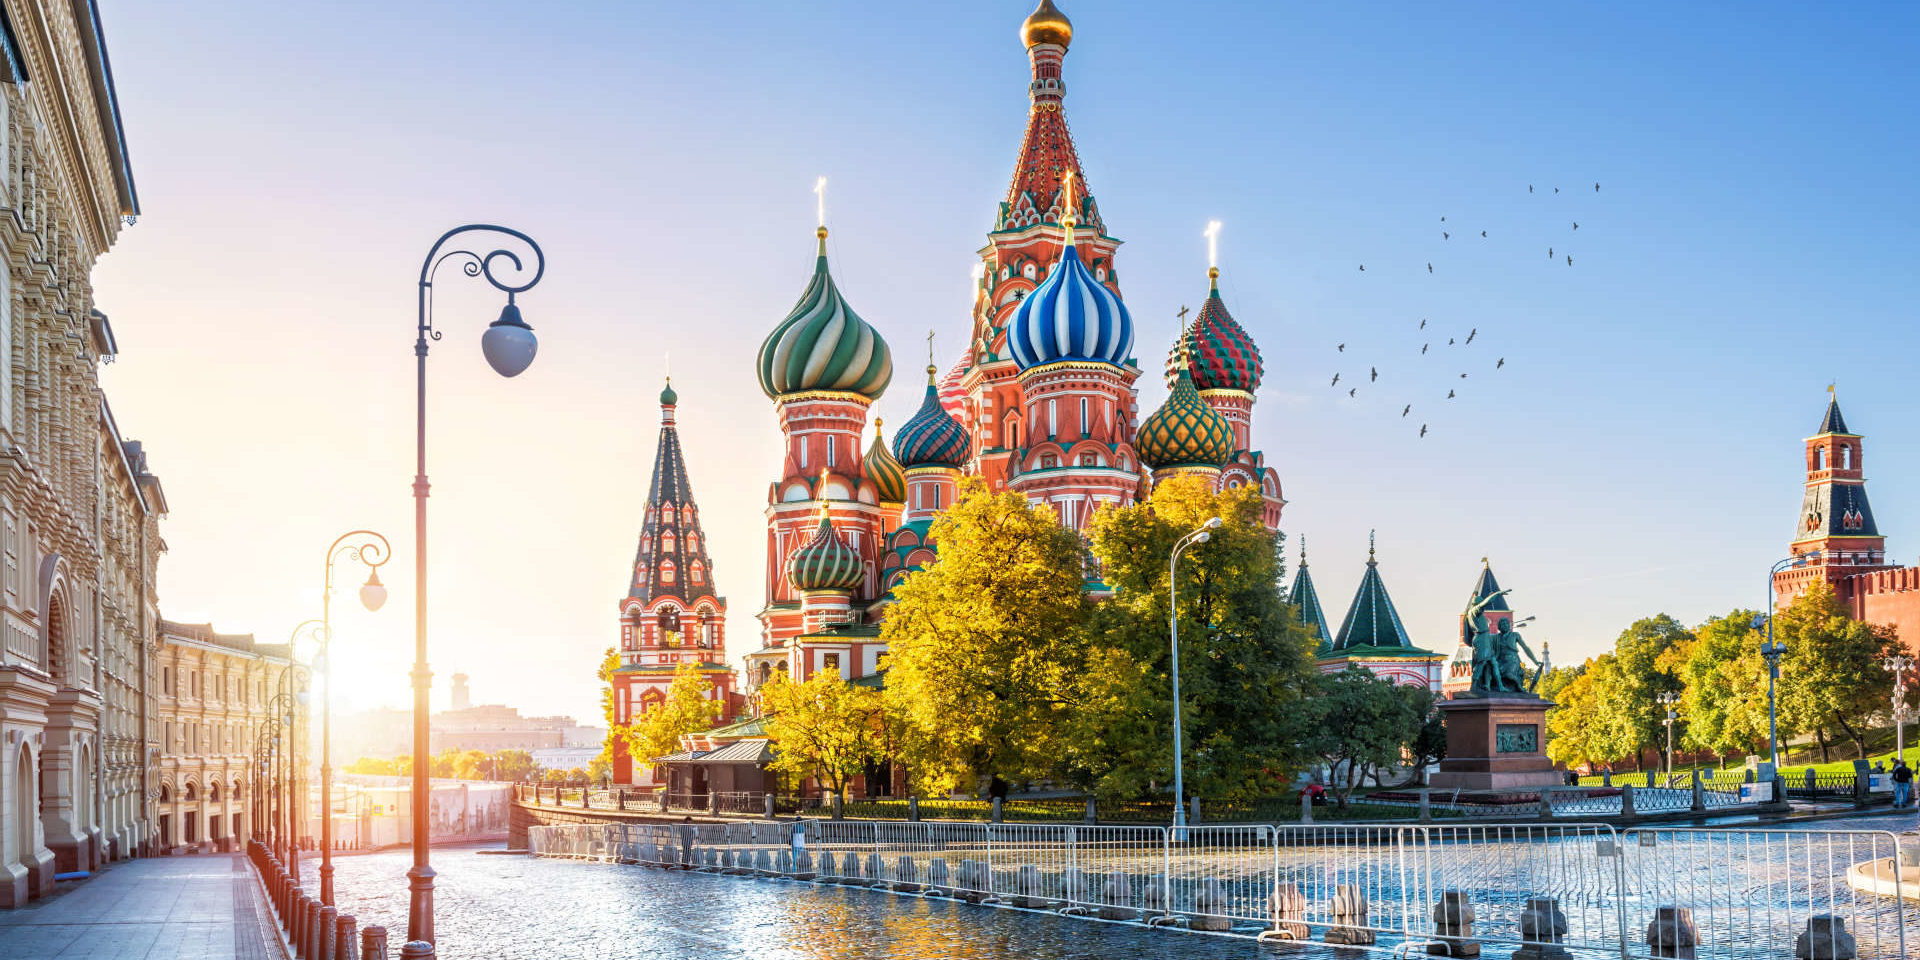 Take a look at Russia's top upcoming projects for 2018 and beyond